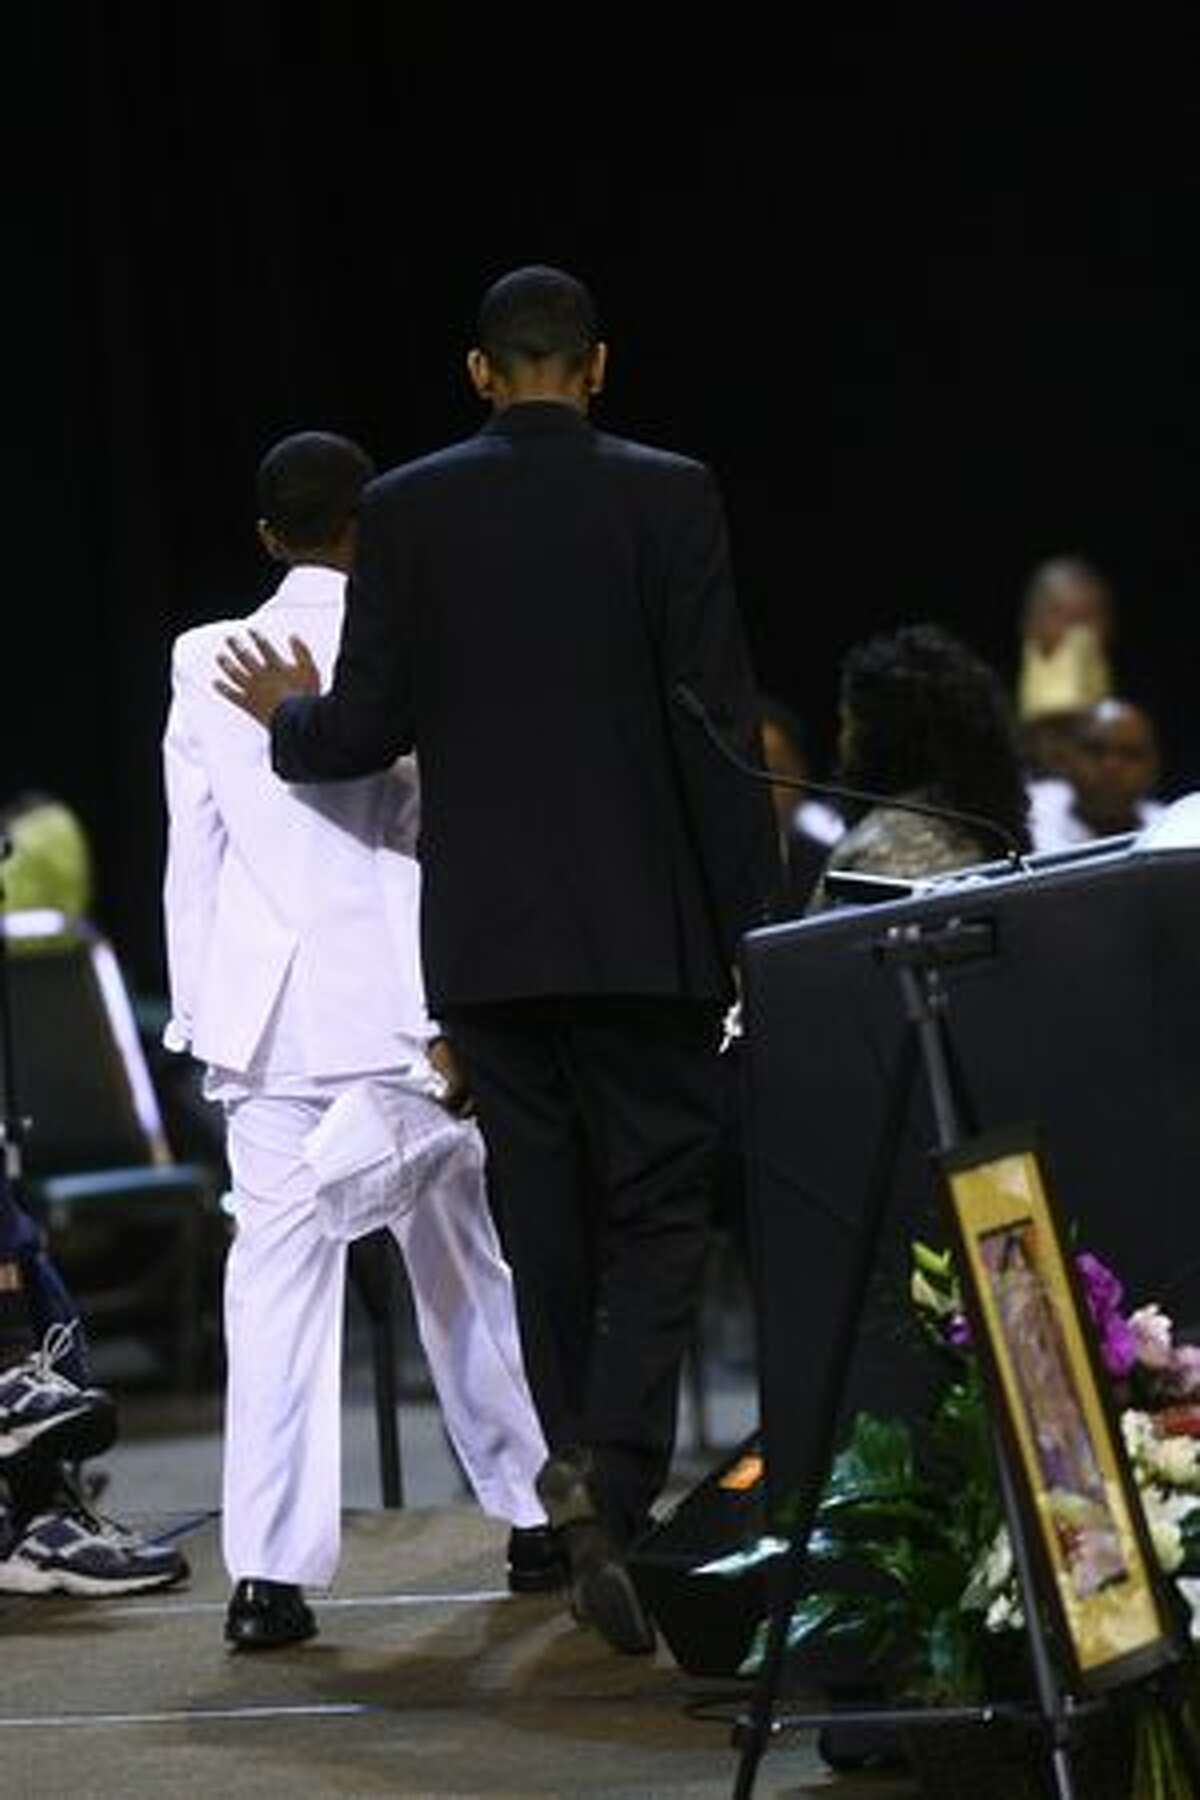 Immediate family members exit the stage after speaking about their lost family members during a funeral service at KeyArena Friday.